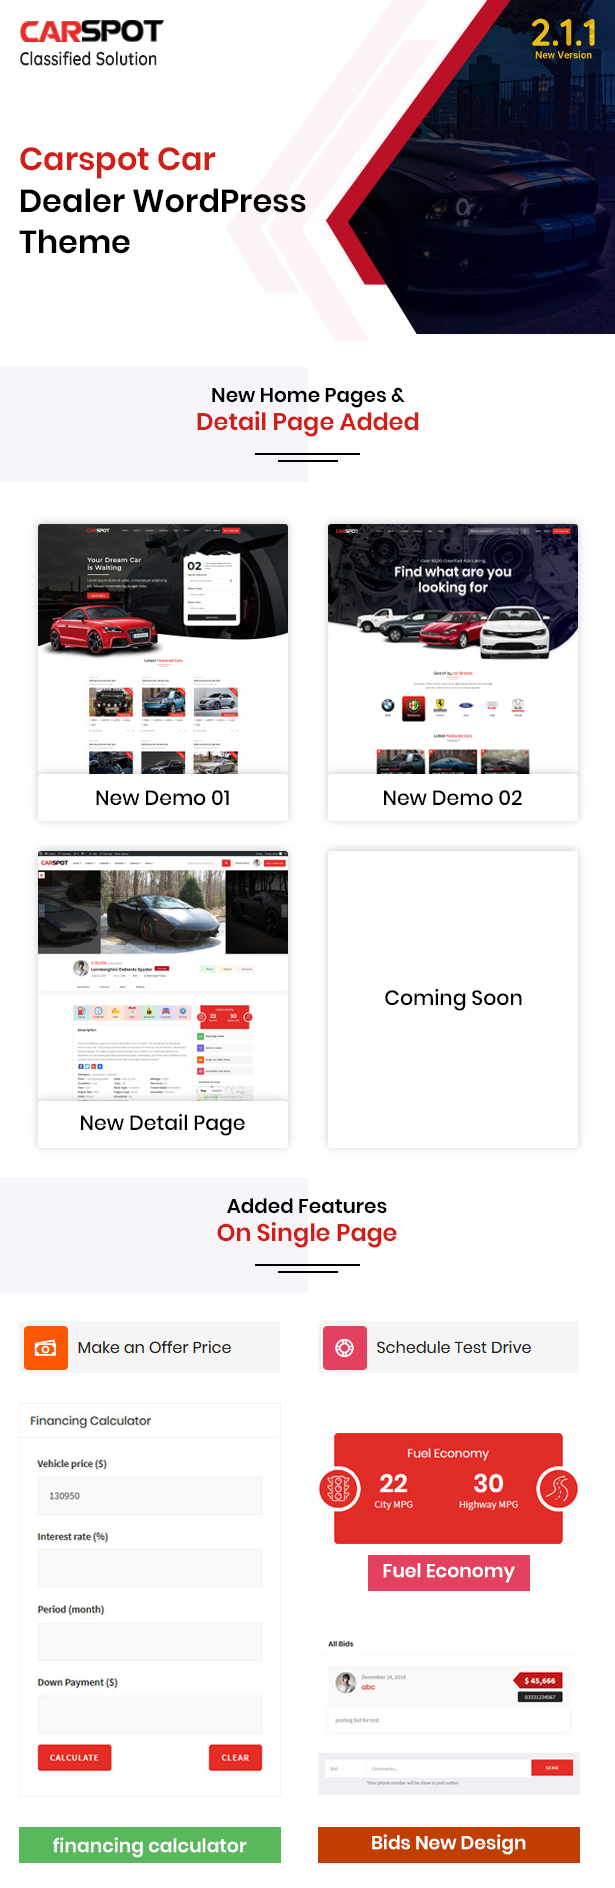 carspot new home pages